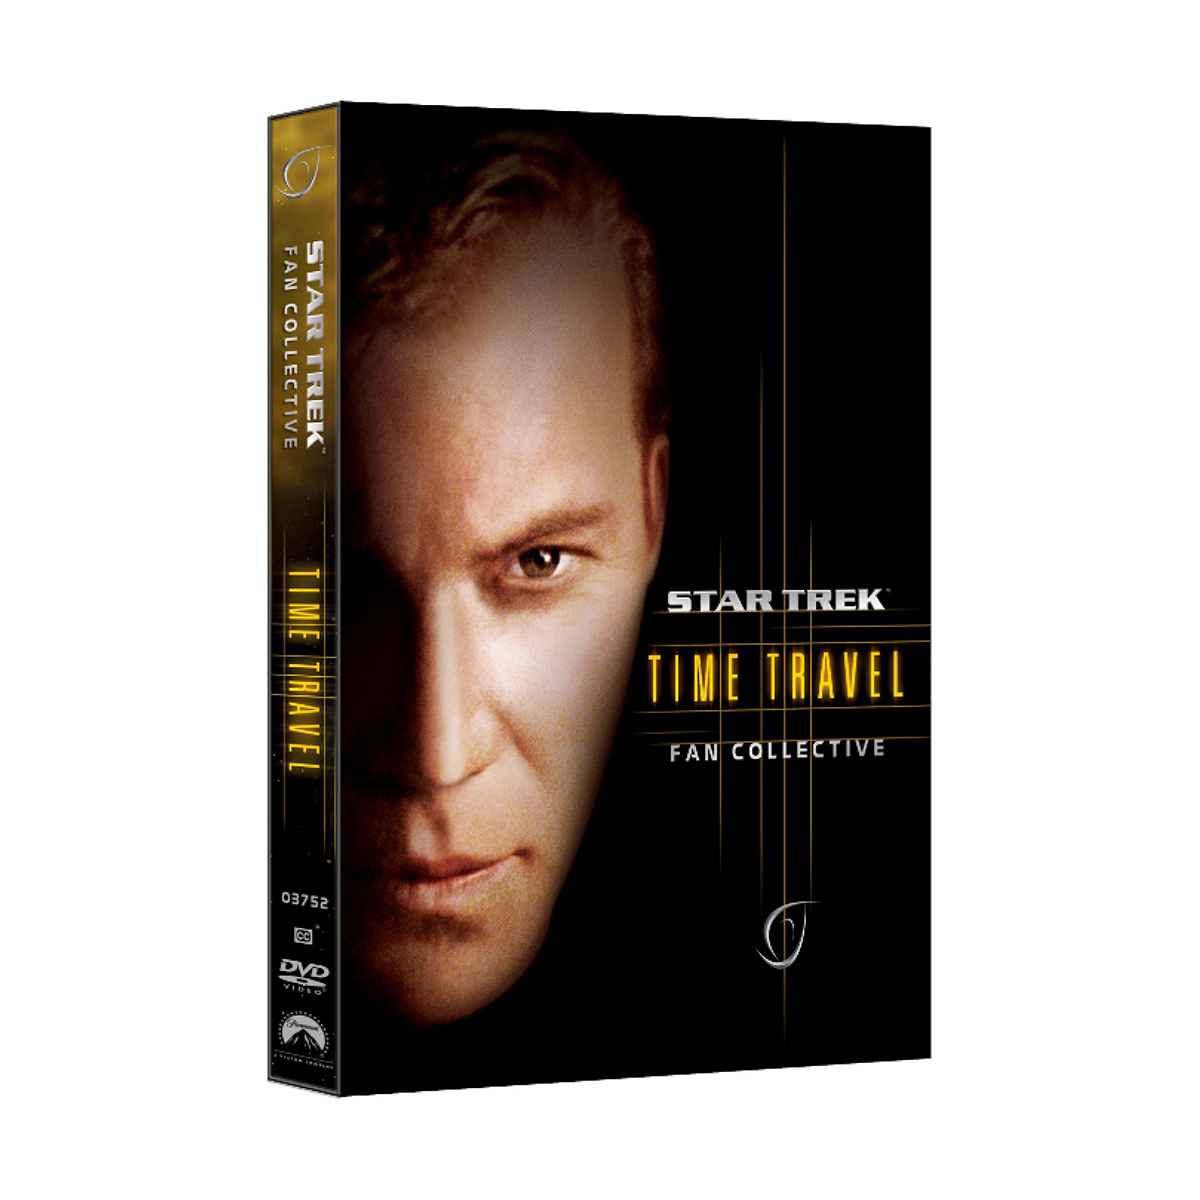 Star Trek: Fan Collective - Time Travel DVD